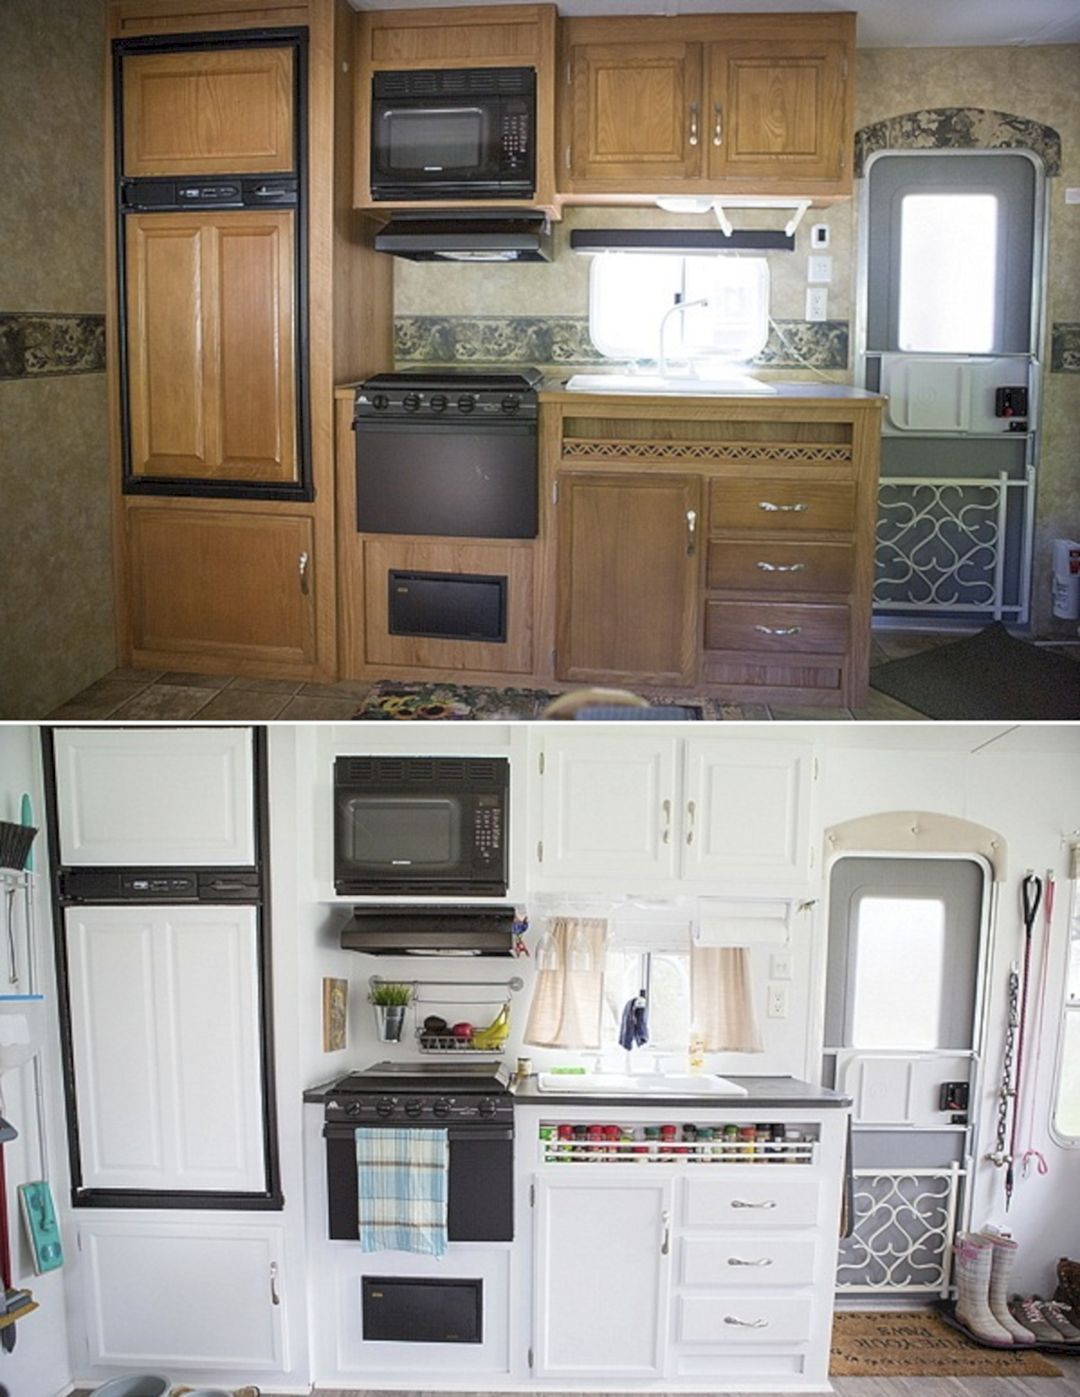 30 Awesome Rv Kitchen Remodel Ideas With Before And After Pictures 22 Rv Kitchen Remodel Remodeled Campers Rv Interior